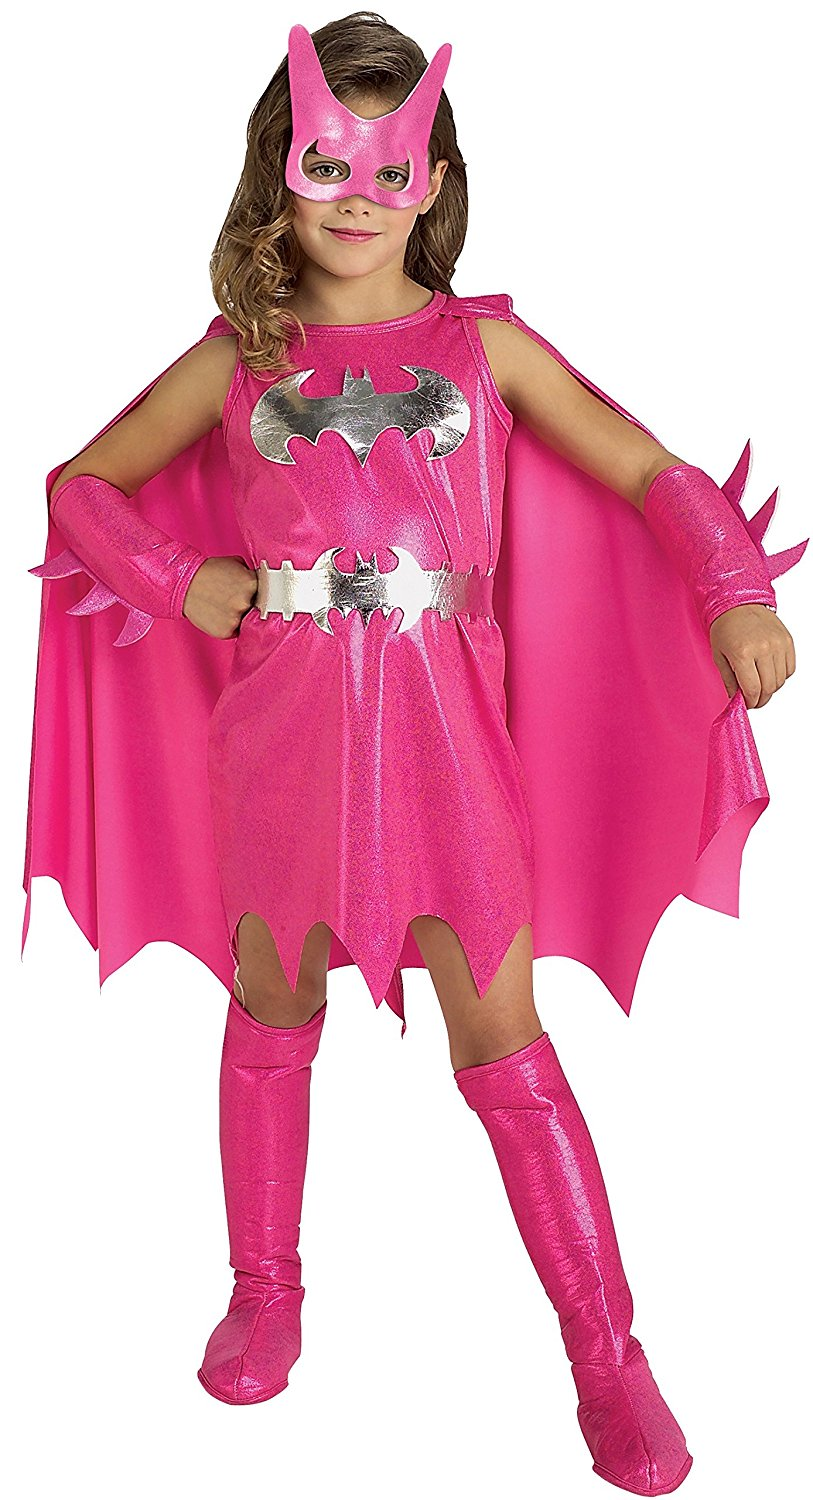 Pink Batgirl costume 882754 Medium 5-7 years